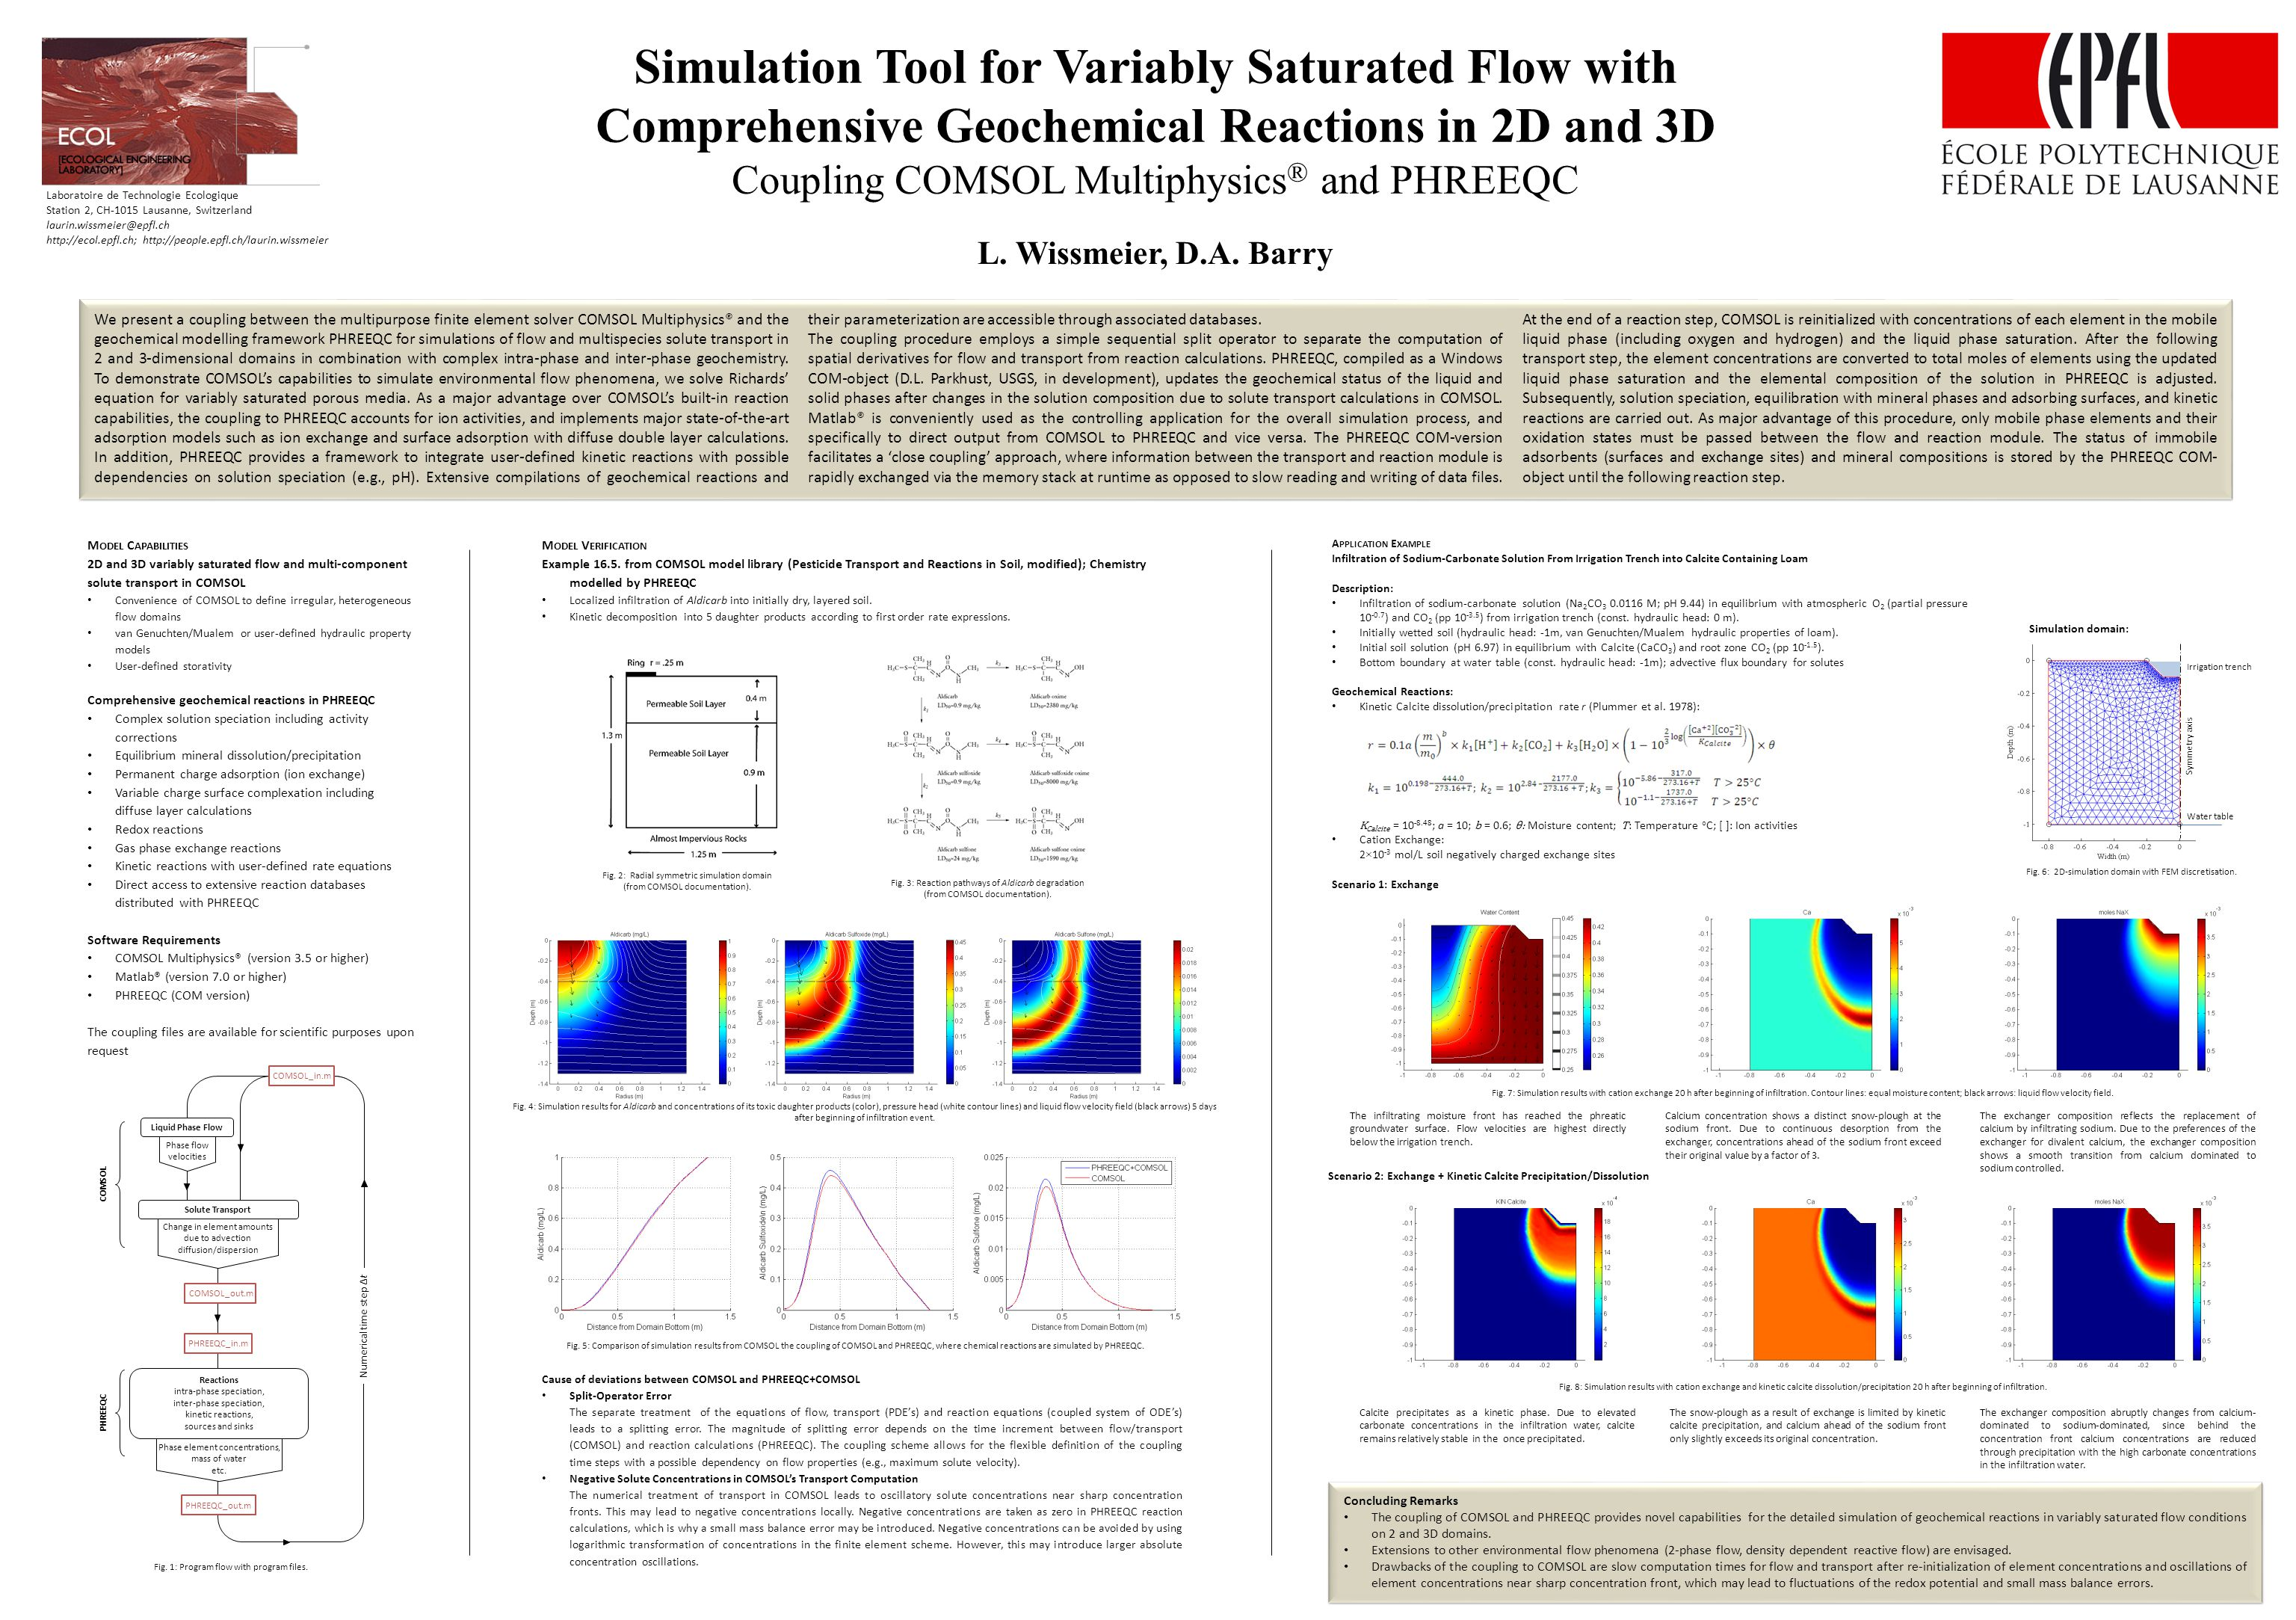 Simulation Tool for Variably Saturated Flow with Comprehensive Geochemical Reactions in 2D and 3D Coupling COMSOL Multiphysics® and PHREEQC